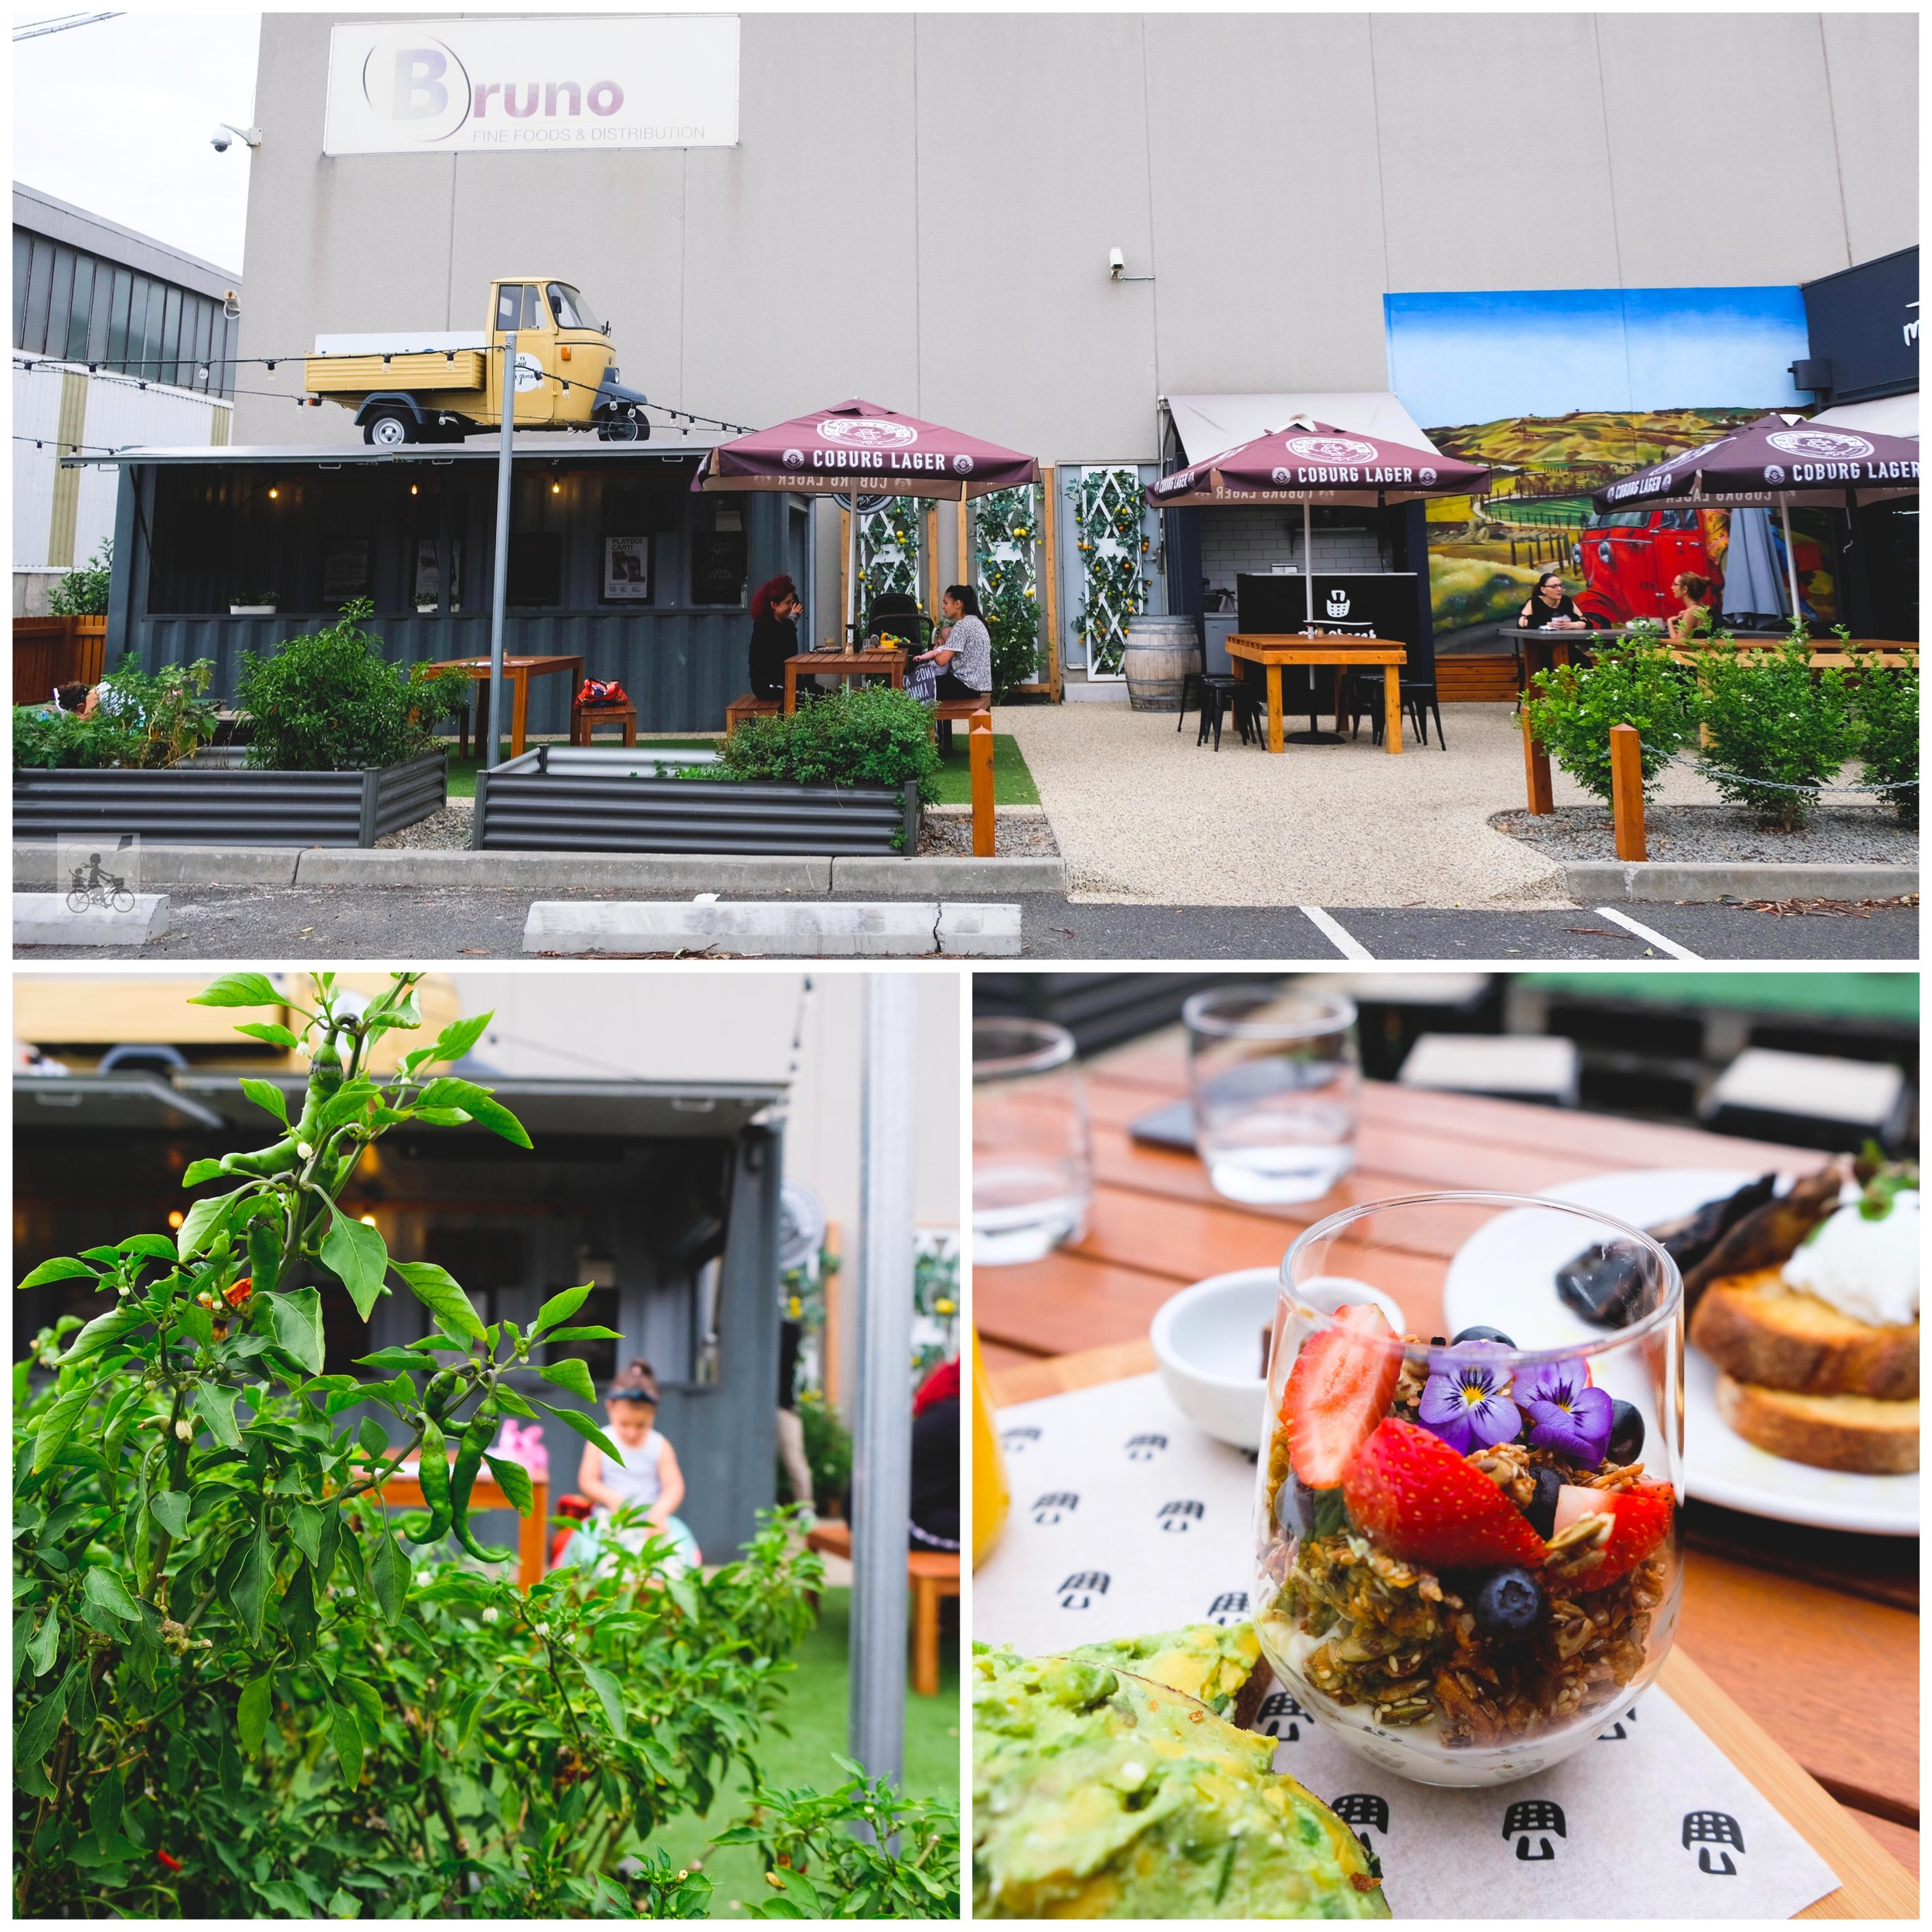 mr grocer cafe and bar, pascoe vale - mamma knows north